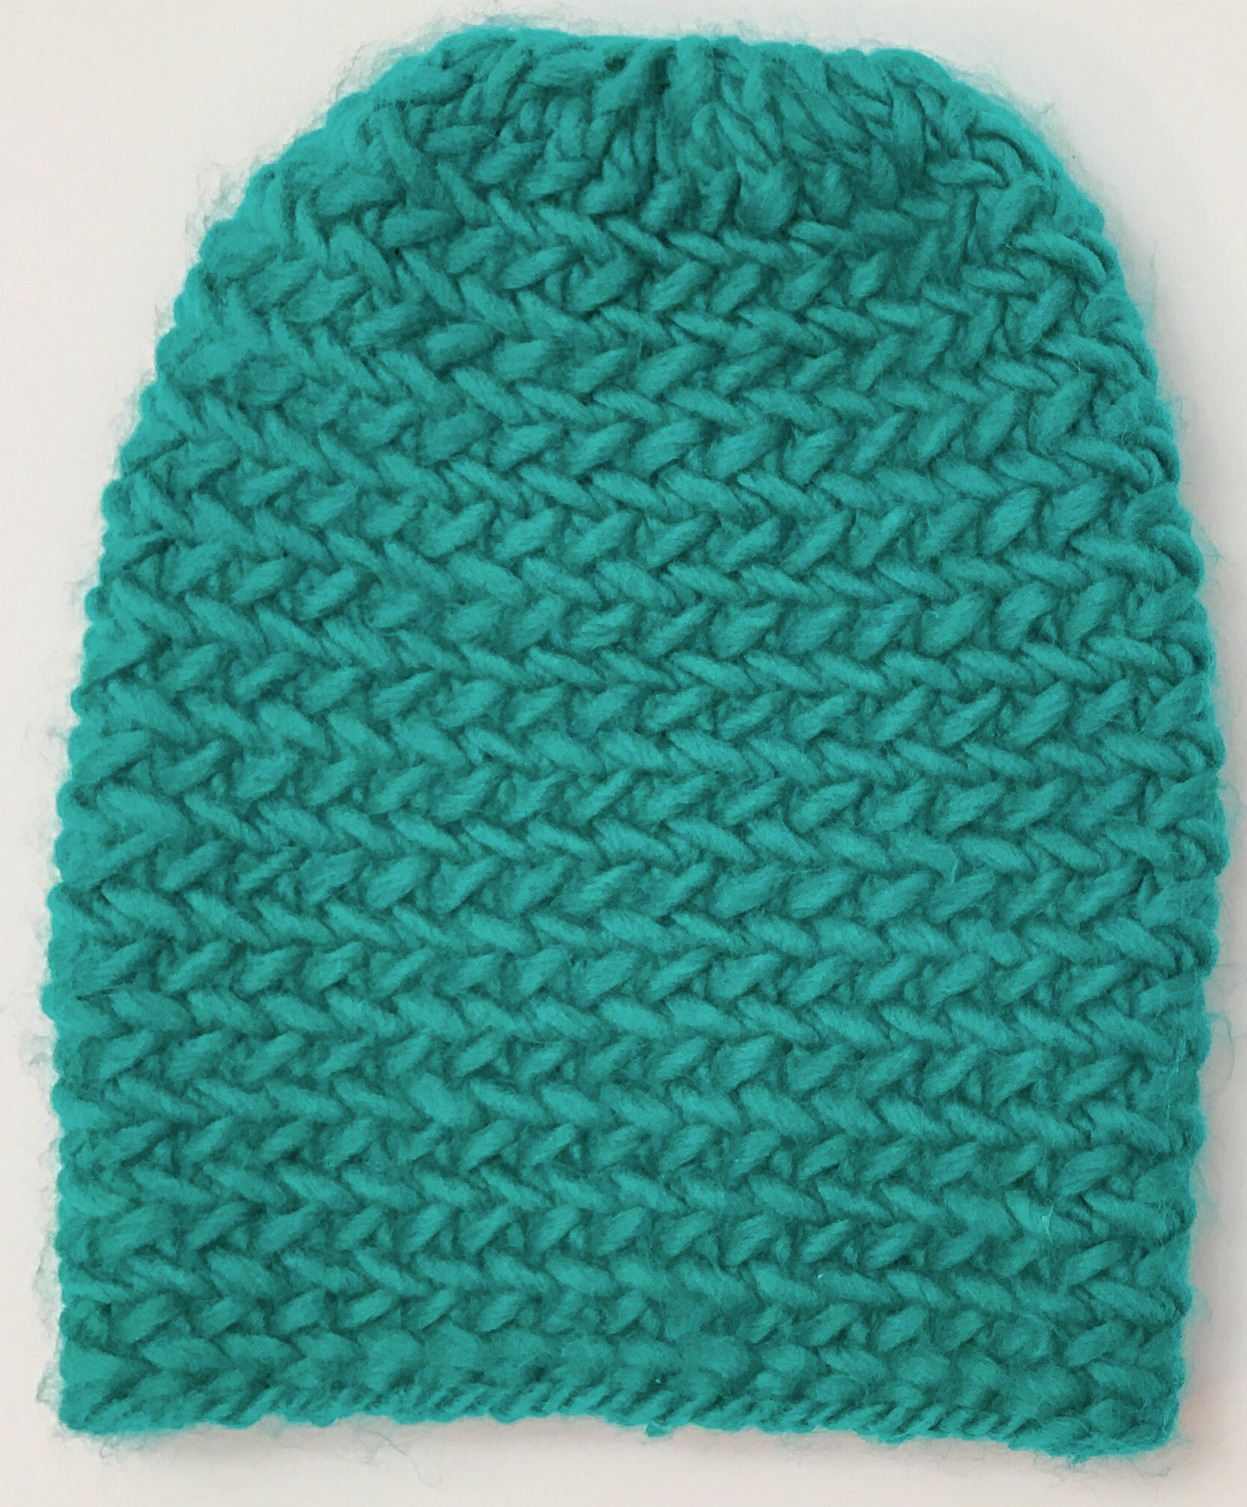 Free Knitting Pattern Hat 10mm Needles : iKNITS: Herringbone Hat - Free Pattern